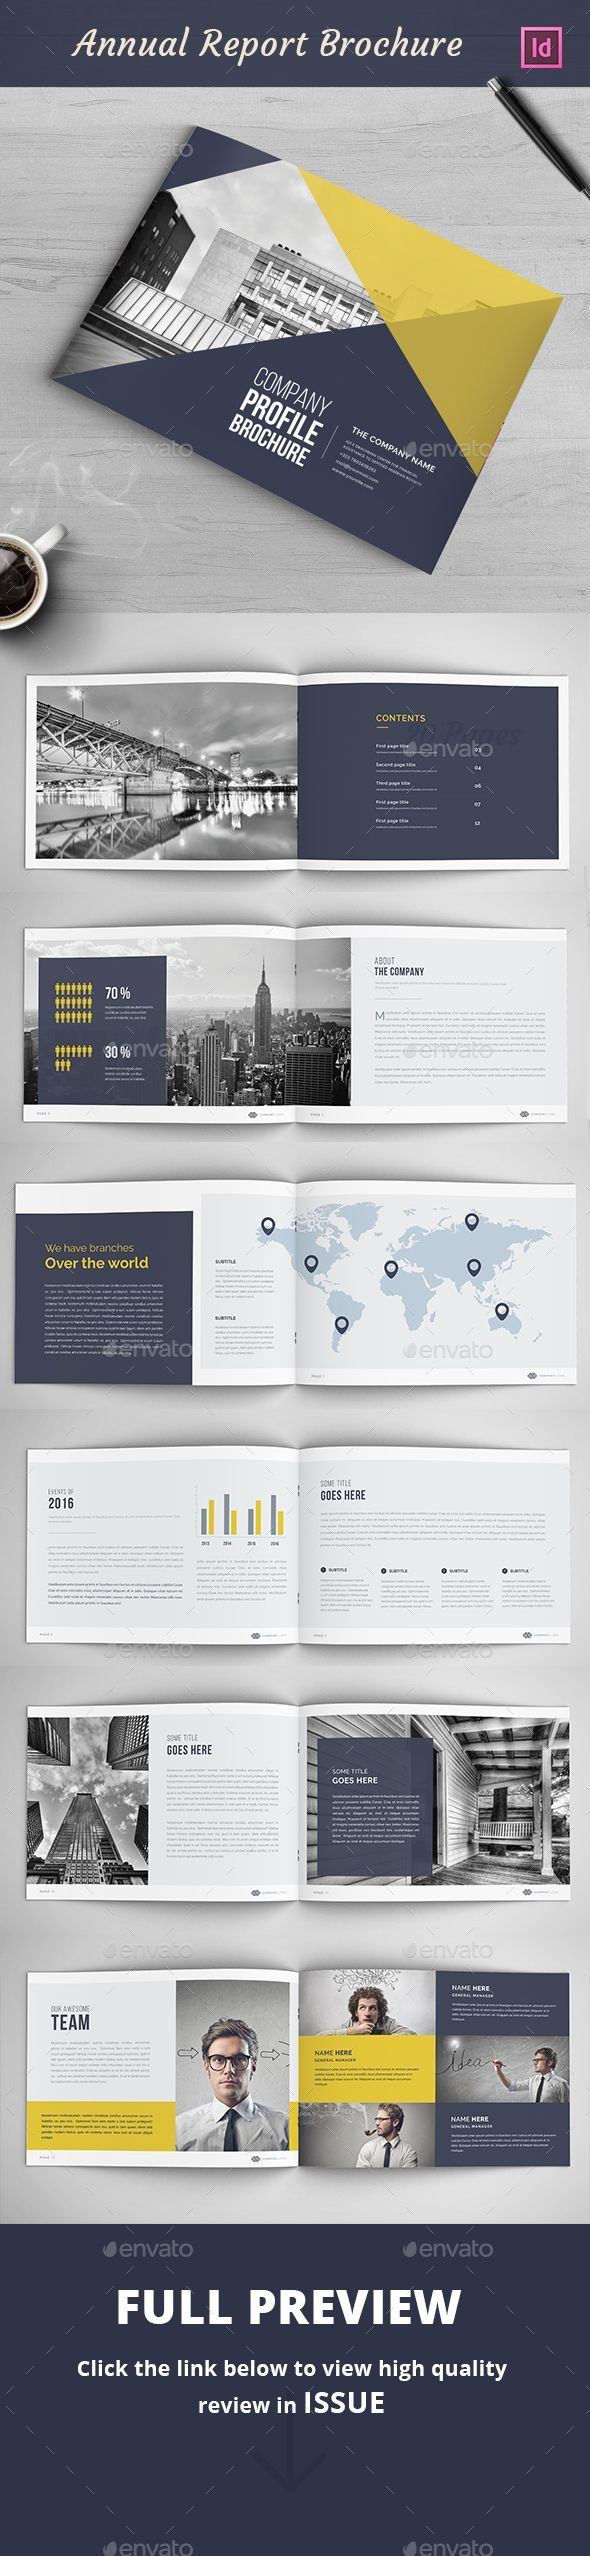 84 best formats images on pinterest page layout graph design and